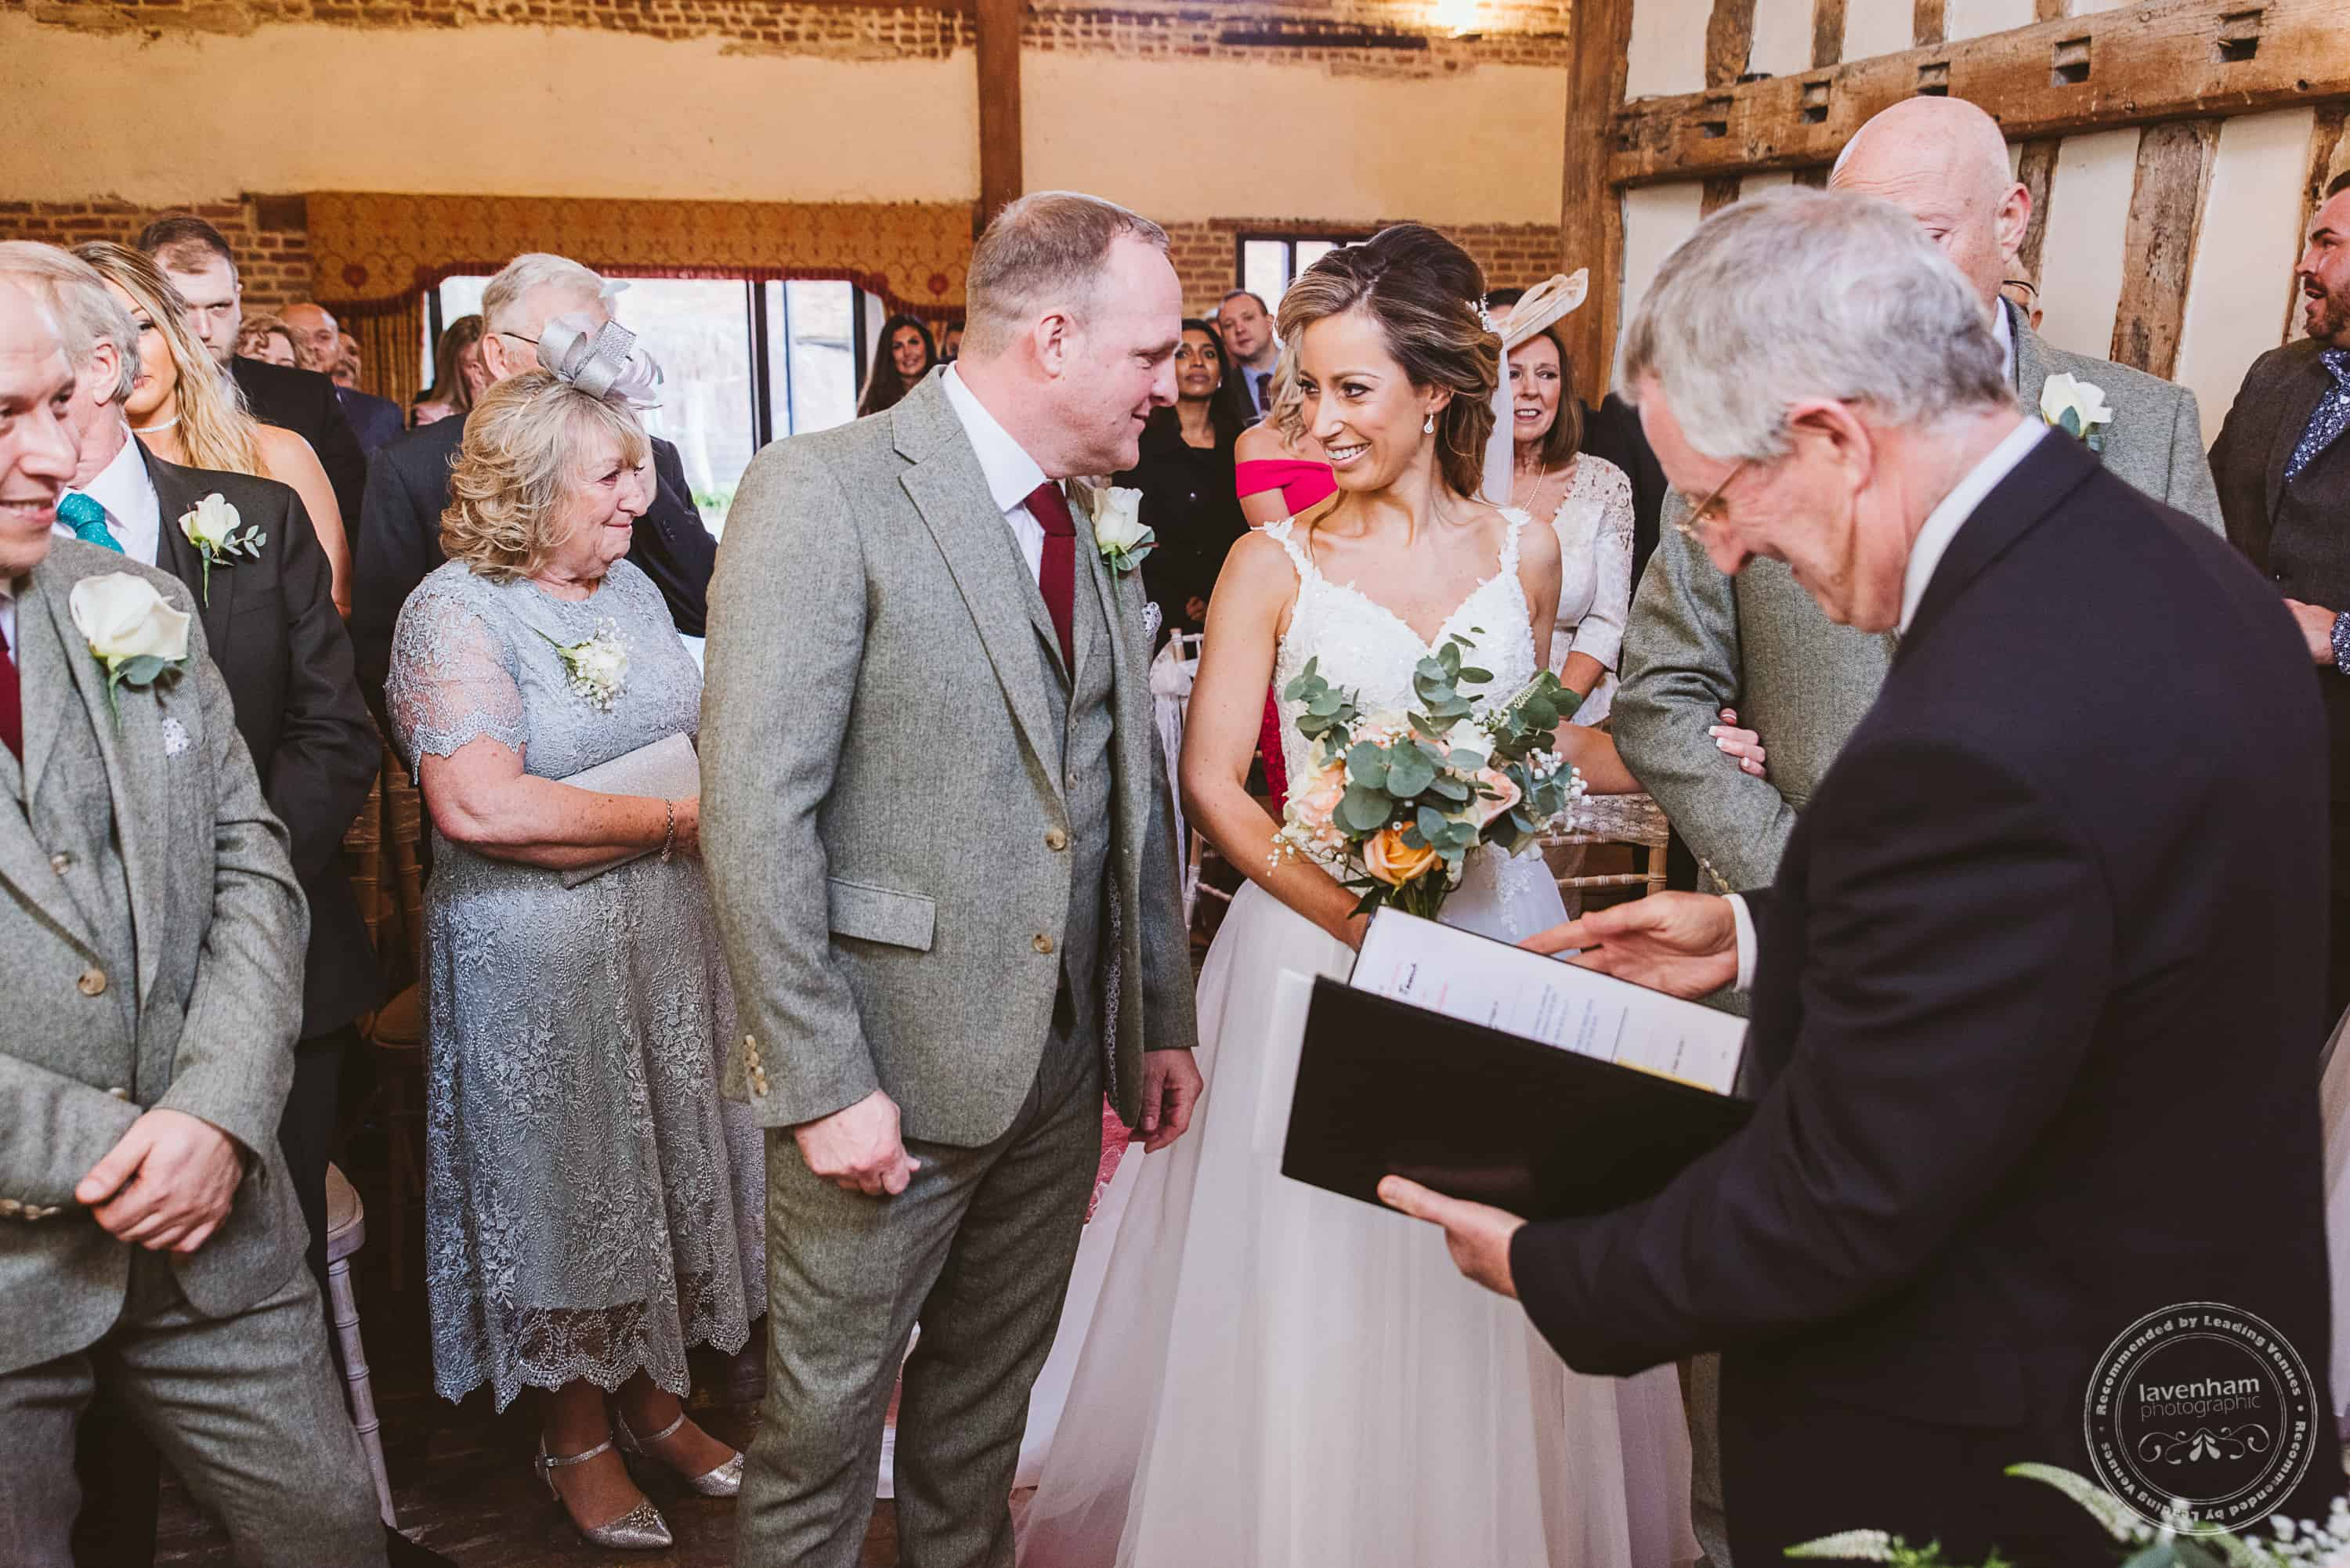 010220 Leez Priory Wedding Photographer 050